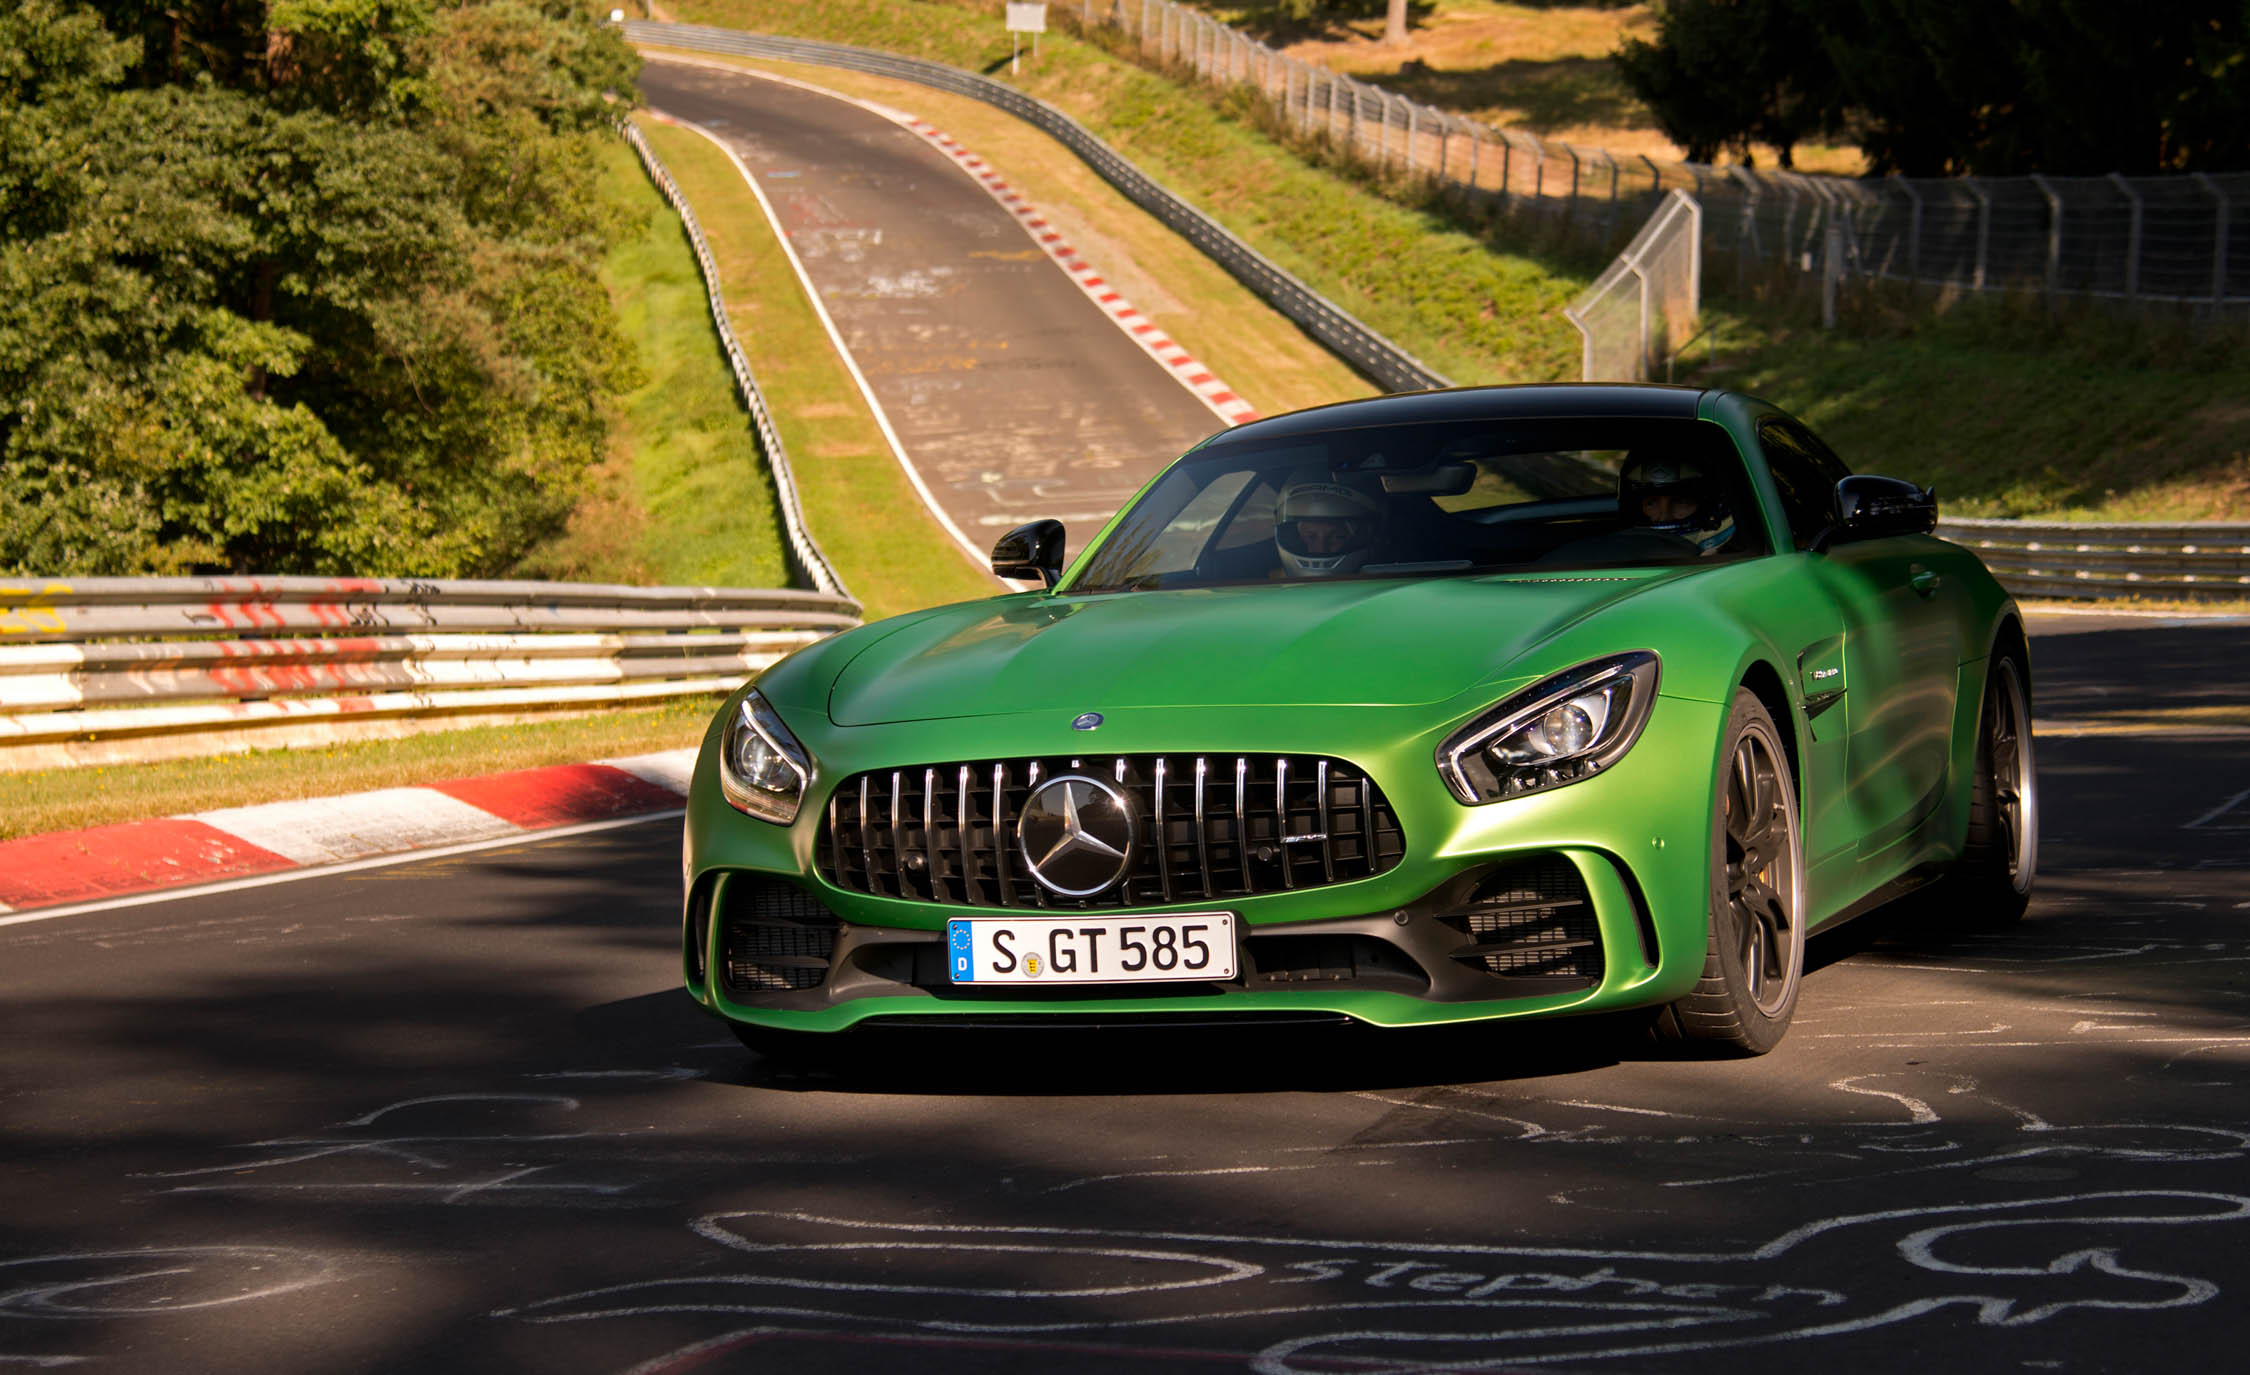 2017 Mercedes Amg Gt R Exterior Front And Side (Photo 11 of 22)